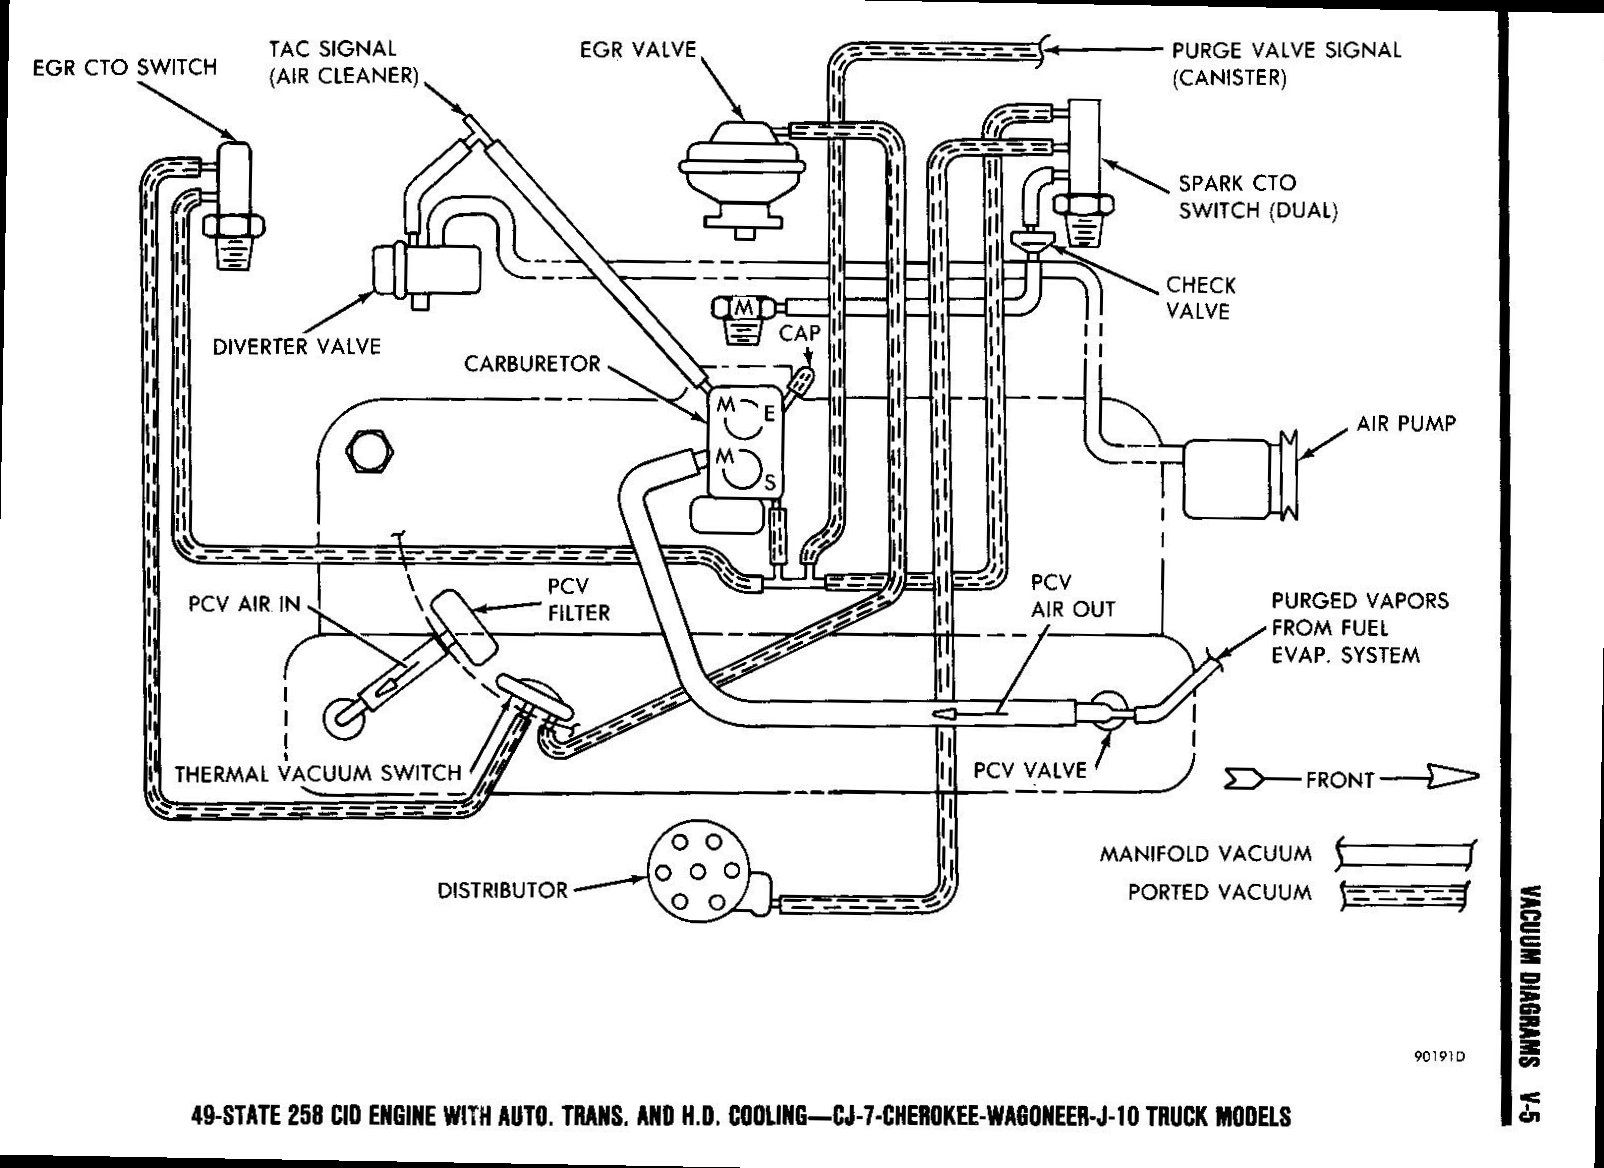 1973 amc 258 wiring harness wiring library eagle amc 258 engine cj5 258 vacuum diagram! jeepforum com